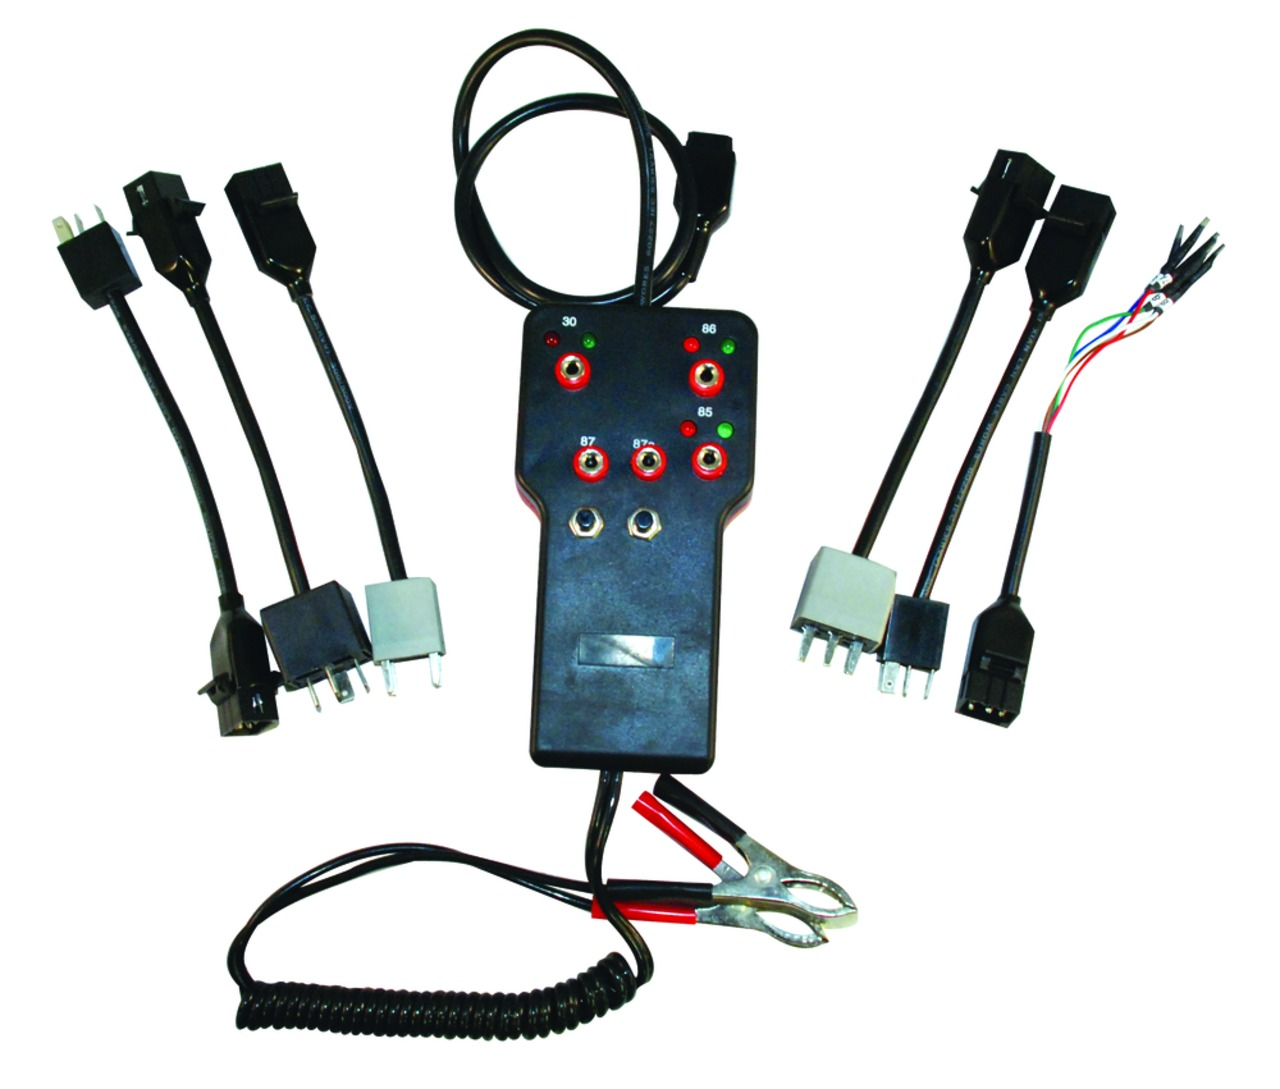 Astounding Monster Mst75 Relay Circuit Tester In Electrical System Tools Wiring Digital Resources Lavecompassionincorg